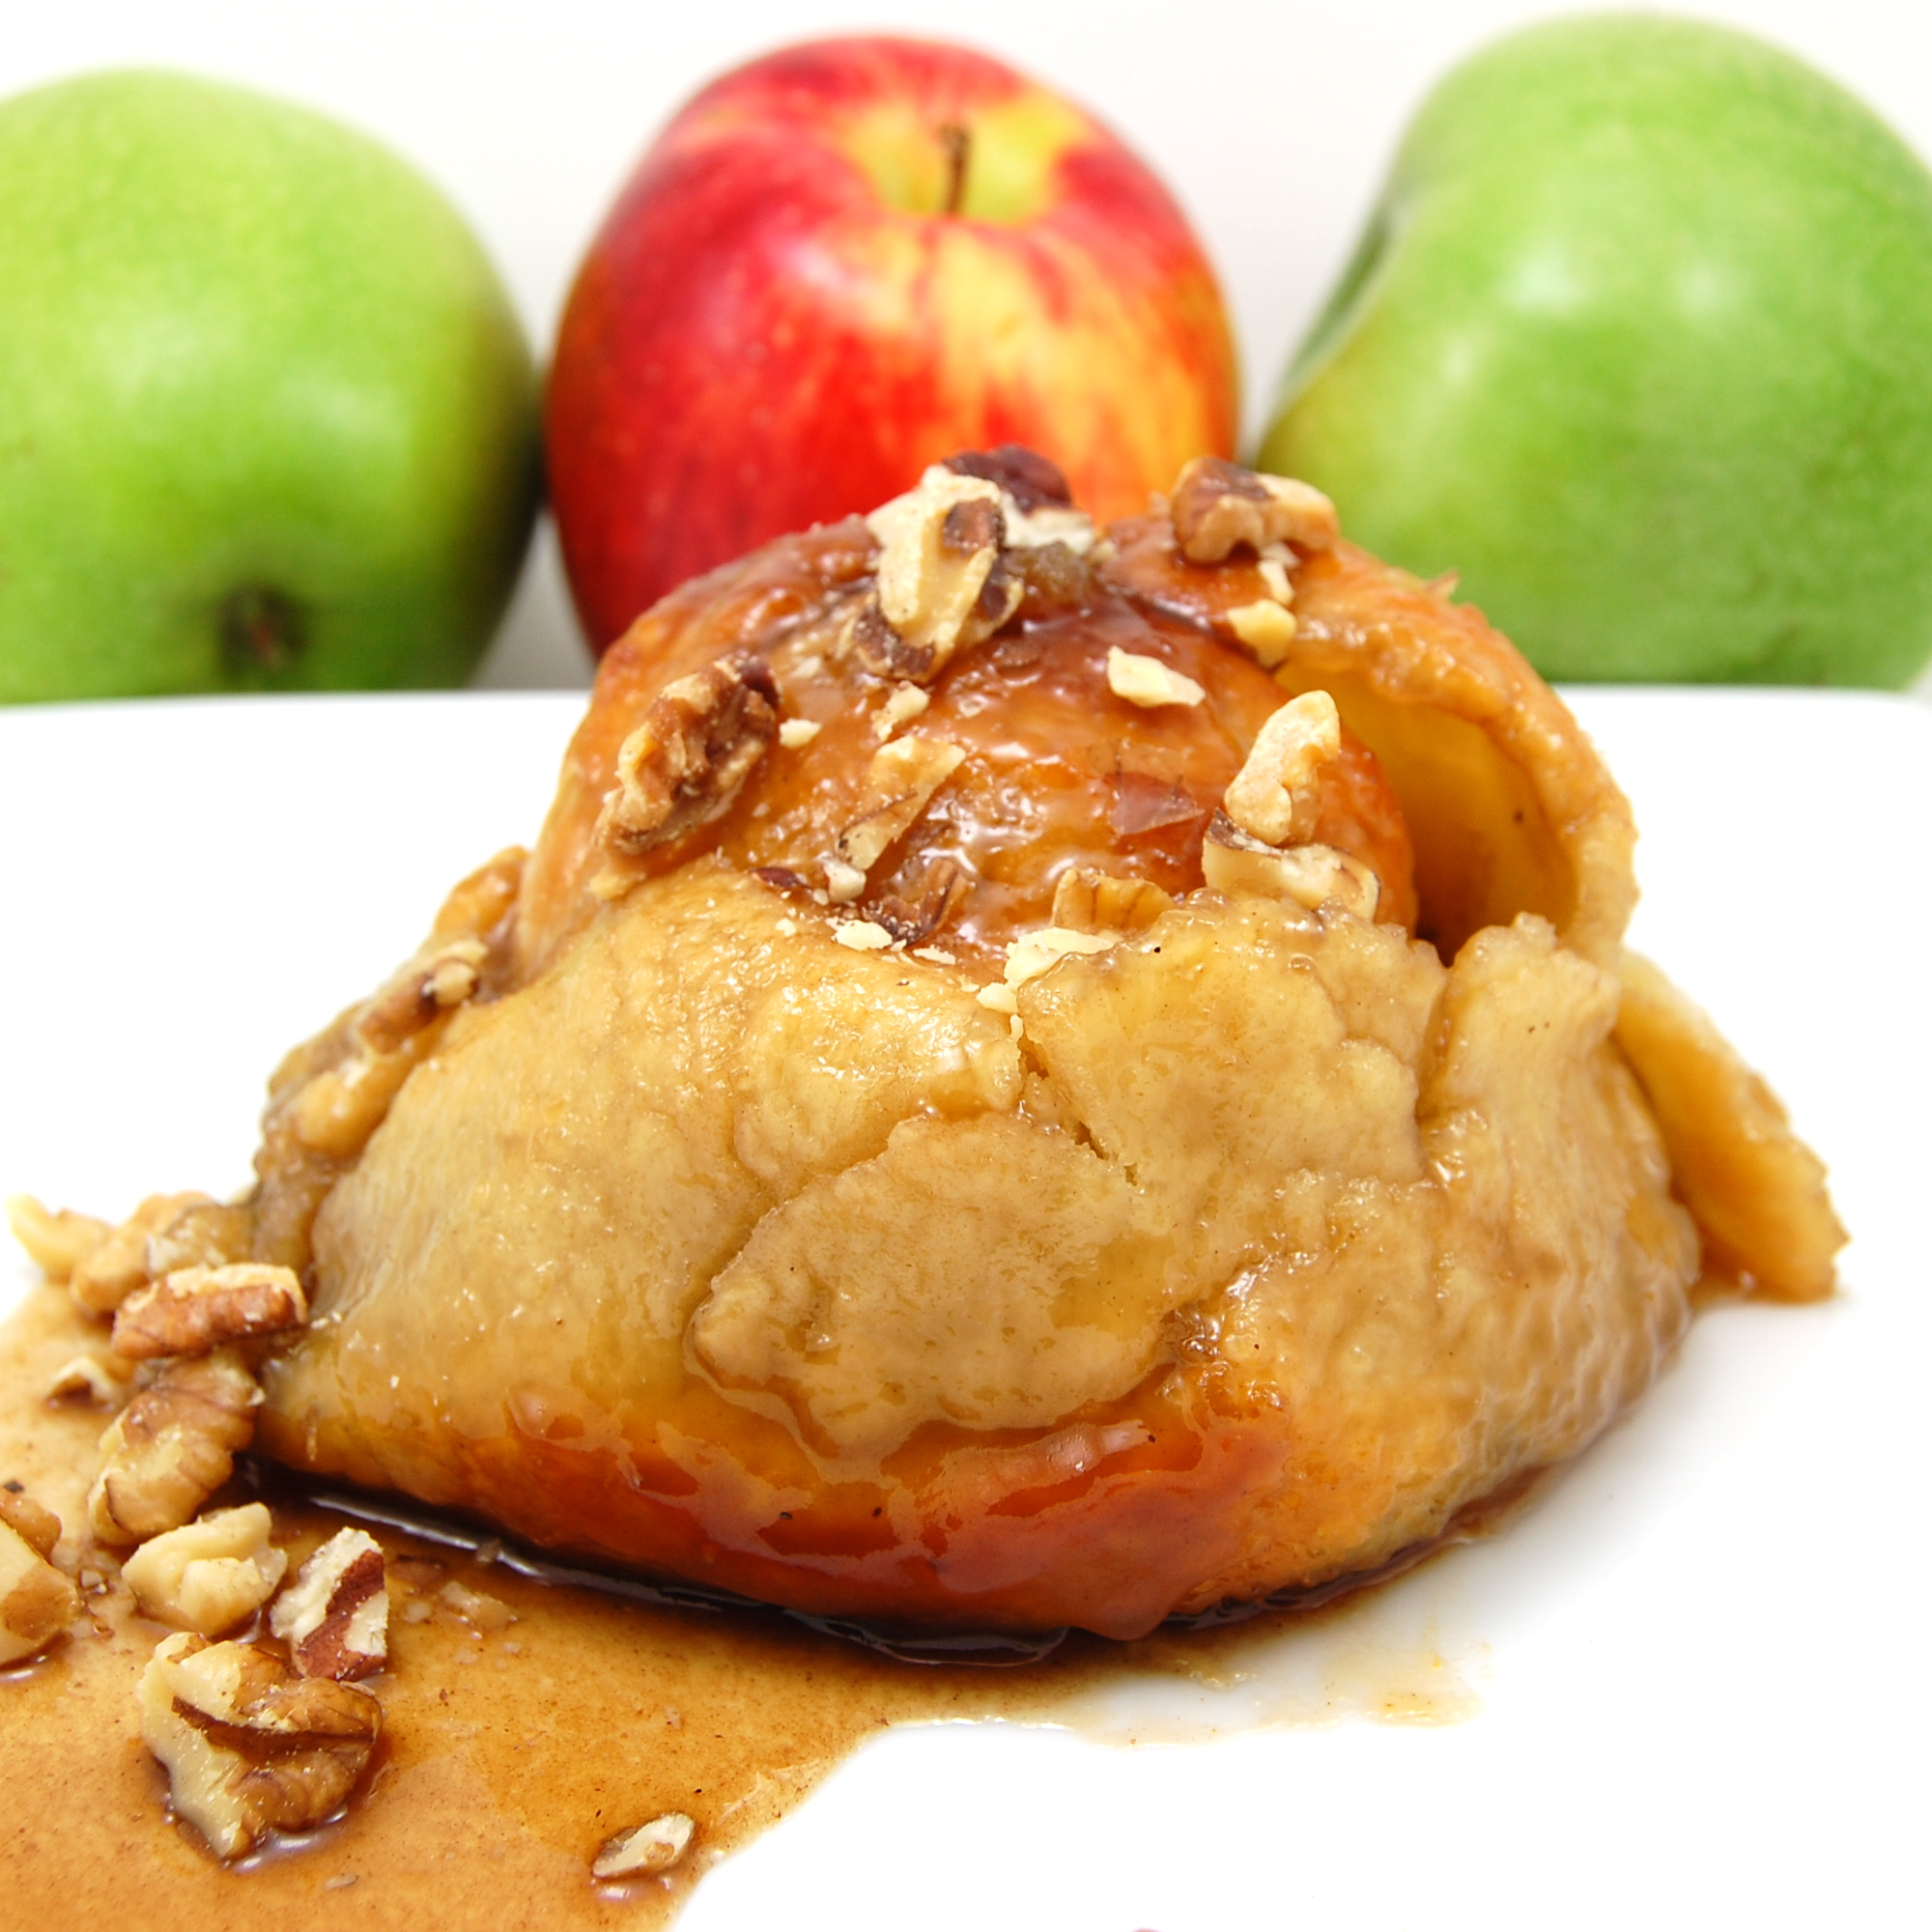 ... cider rum sauce recipes dishmaps apple dumplings with cider rum sauce